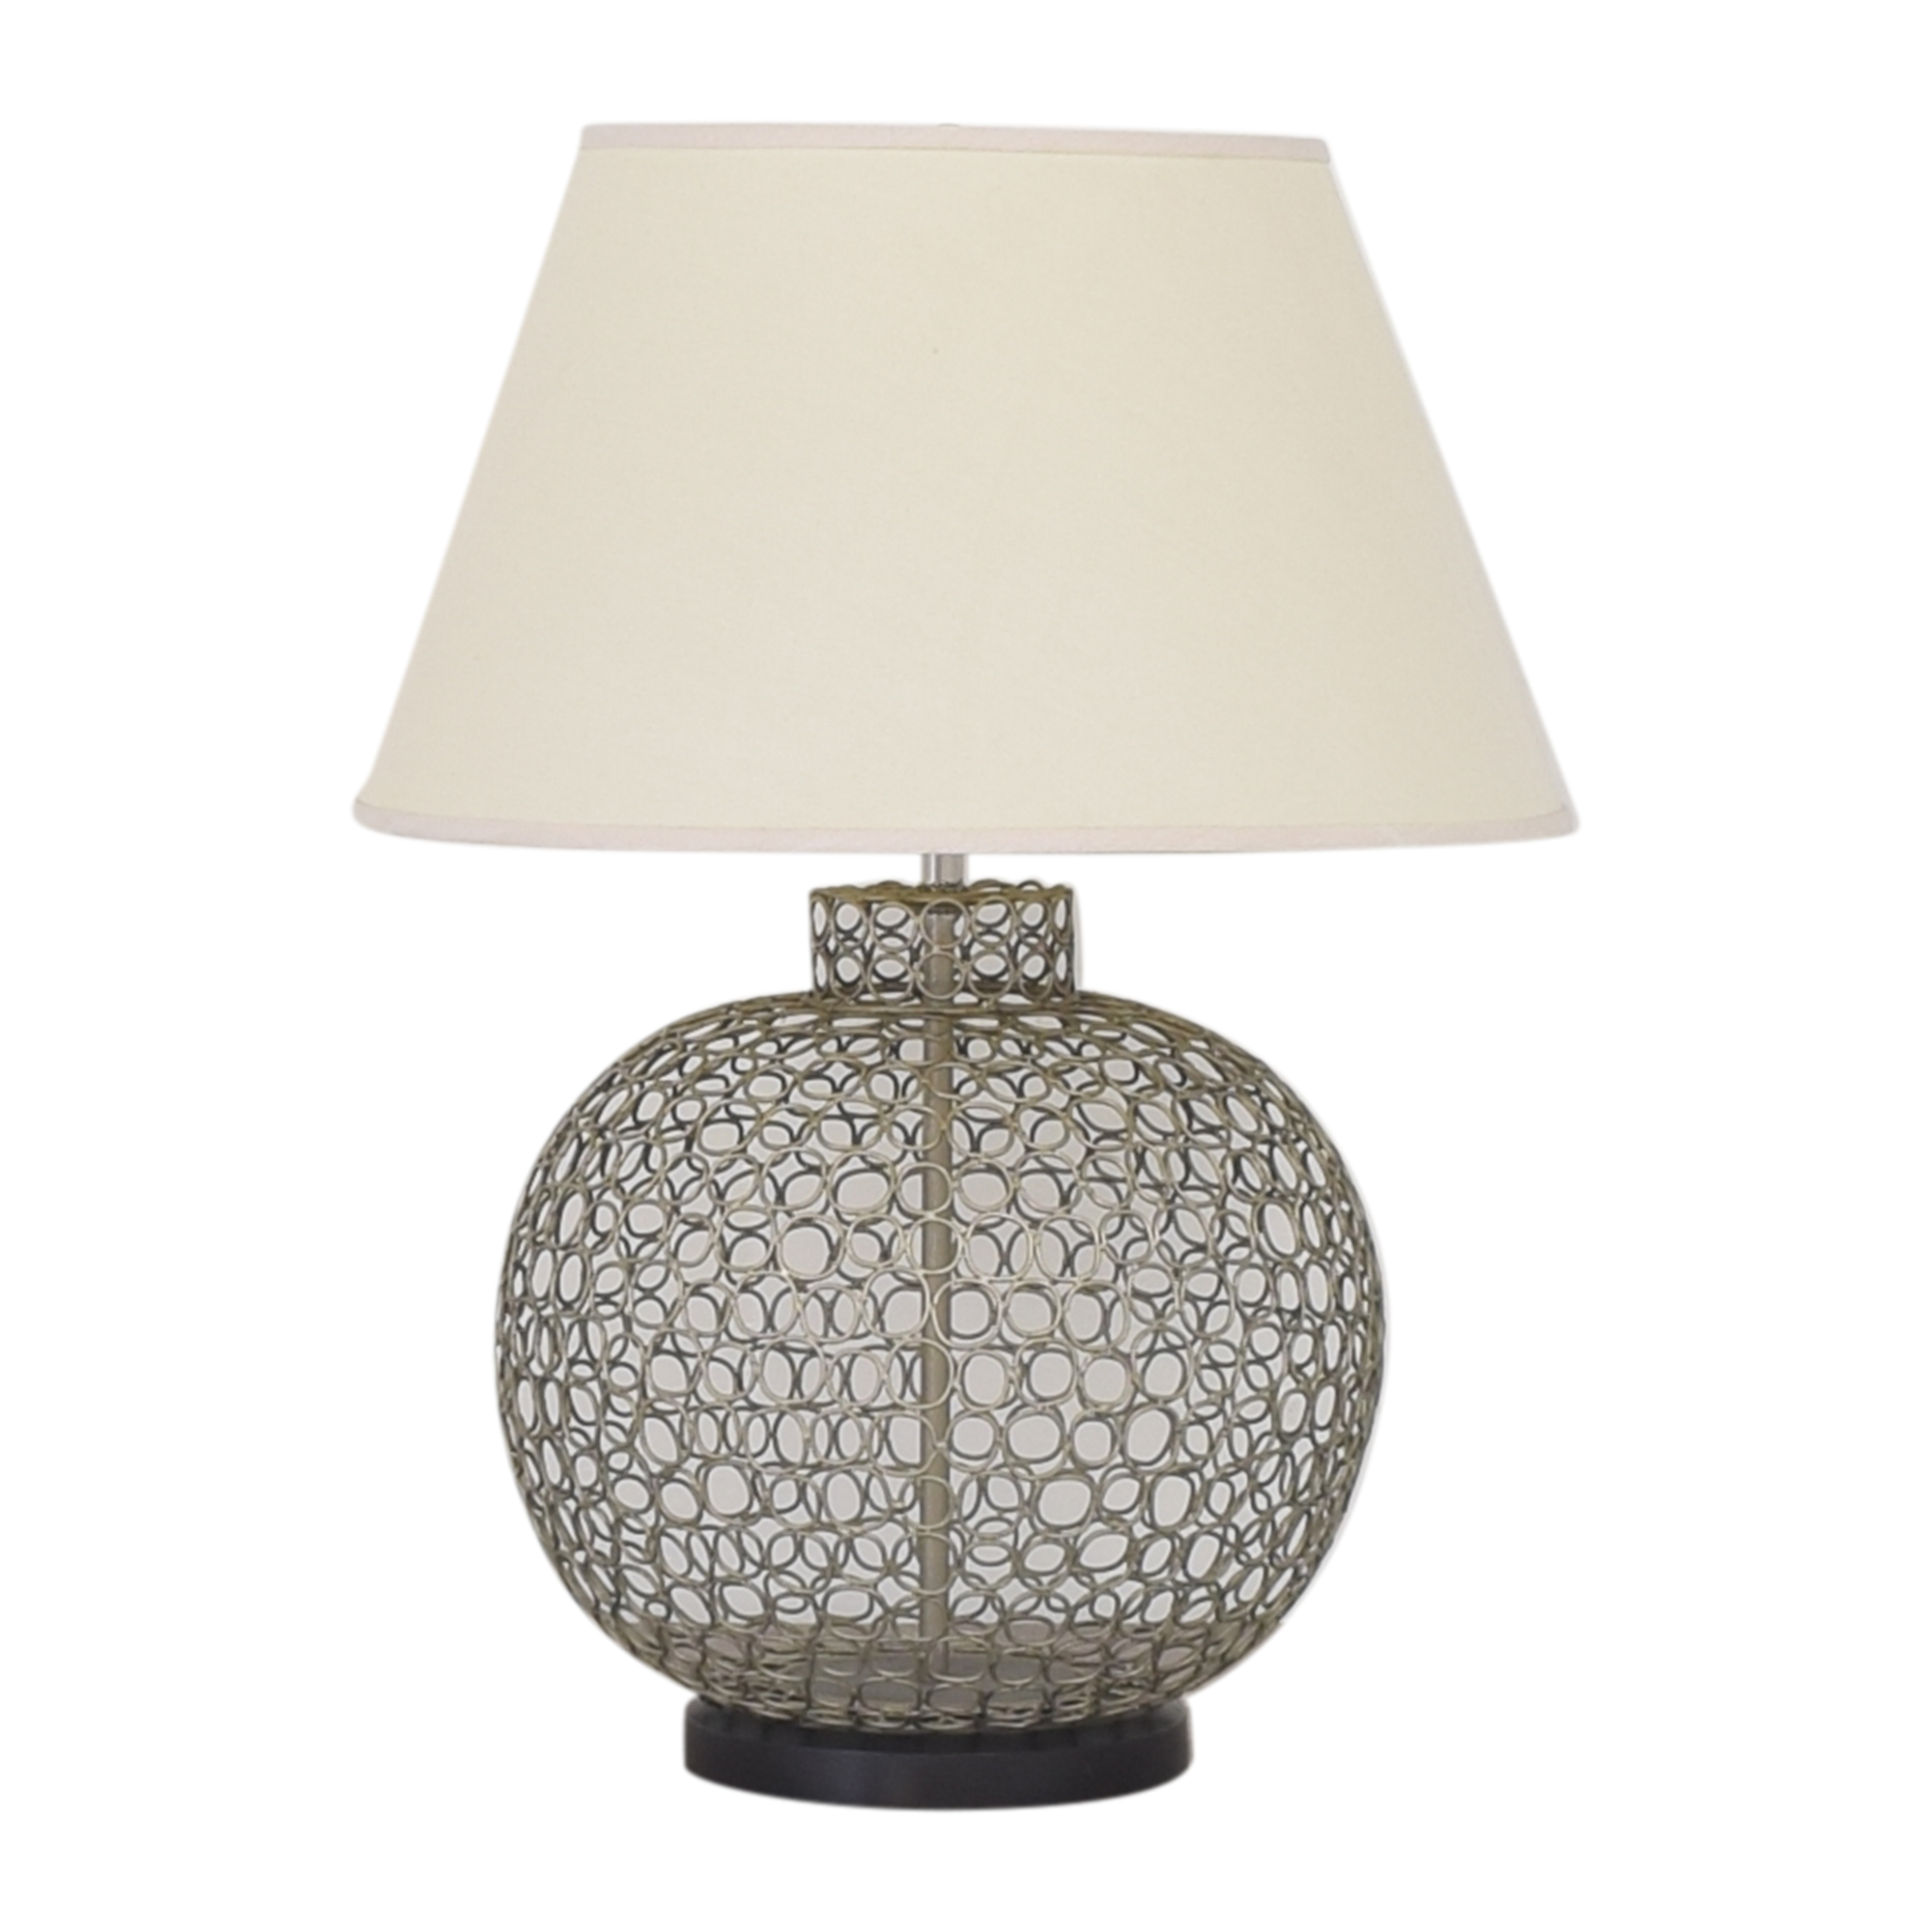 Ethan Allen Ethan Allen Openweave Nickel Table Lamp coupon